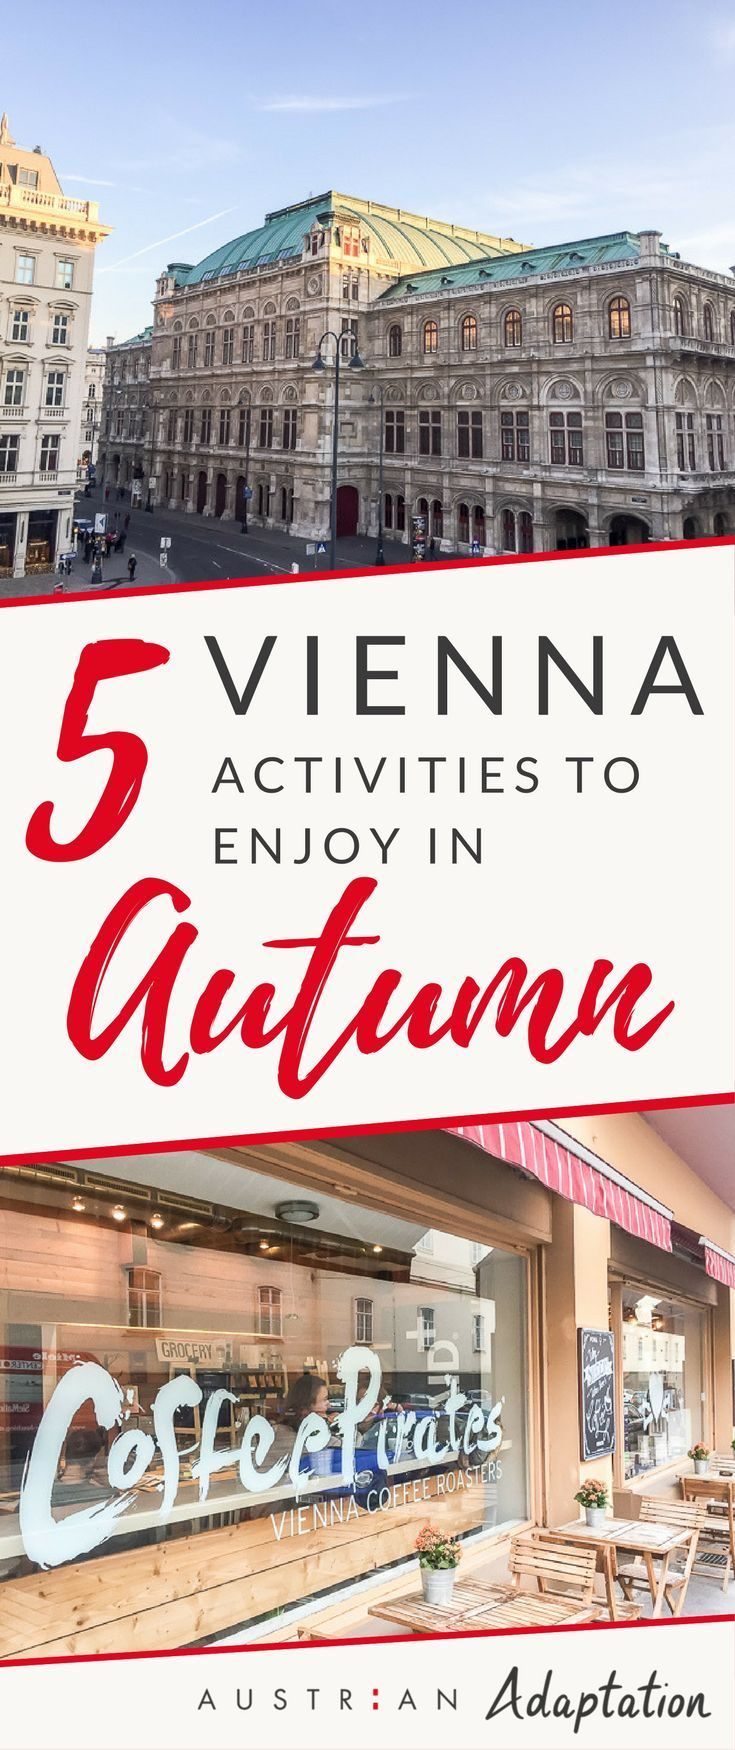 Autumn is a great time to travel to #Vienna, #Austria. There are many great things to do. Check out these tips and photos. You'll find the best musuem and cafe to visit, as well as an awesome hike. #viennacity #vienna_austria #austrianblogger #austrianblog